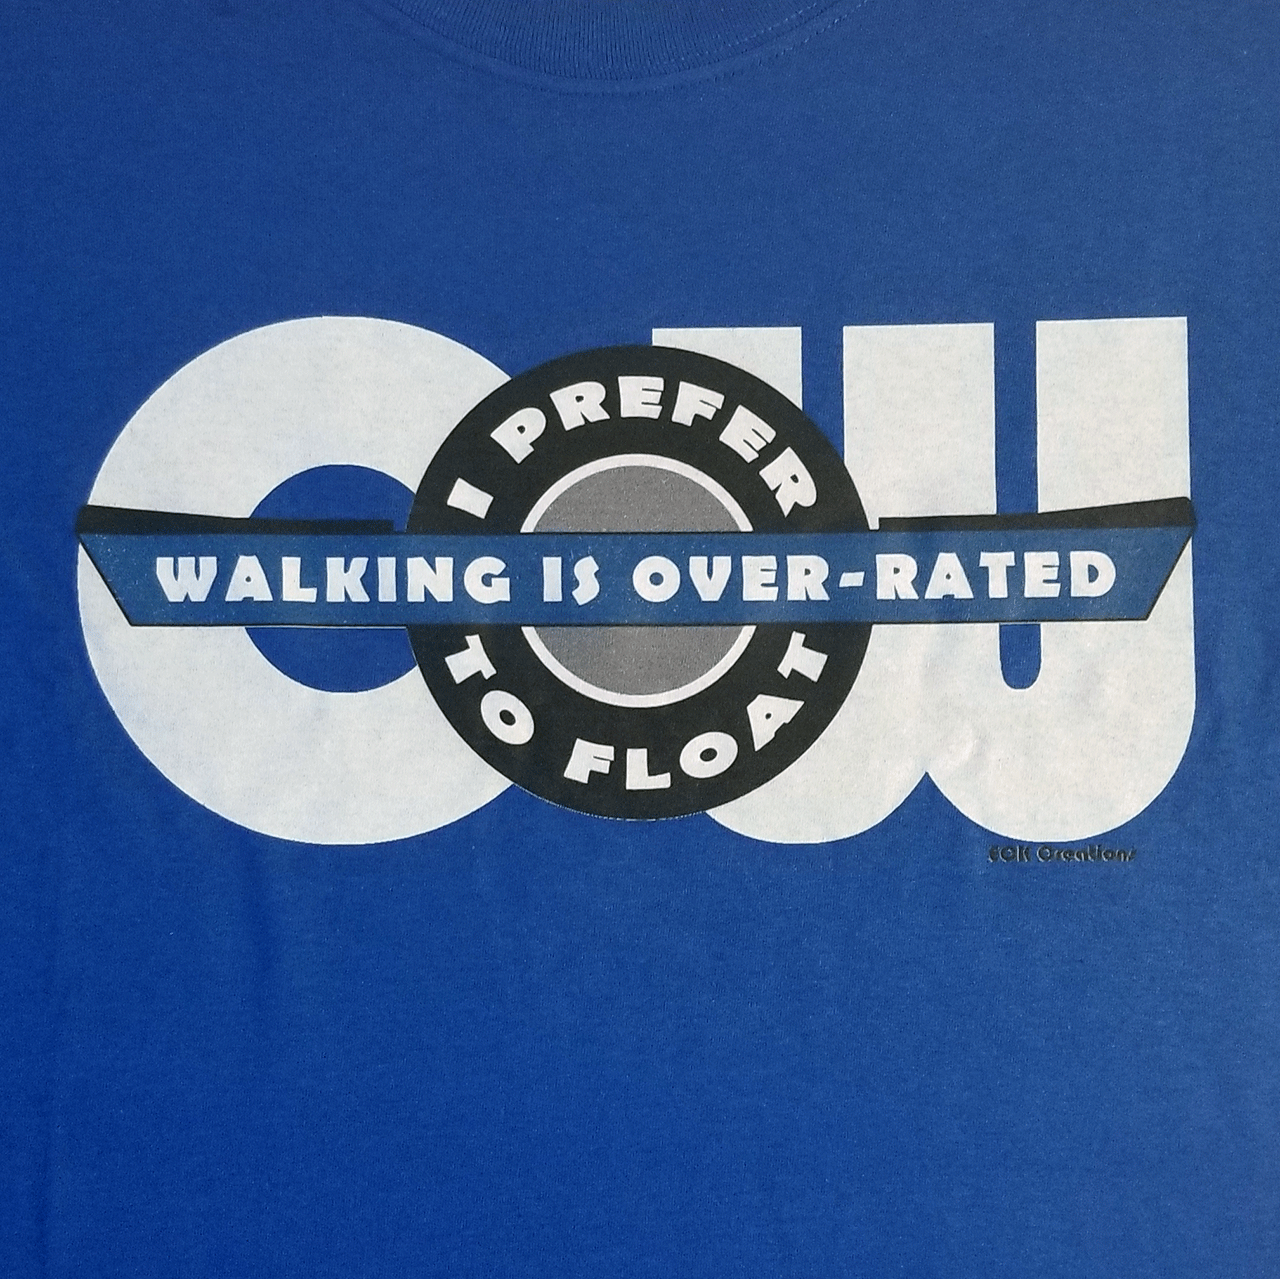 Close up of Blue T-shirt logo